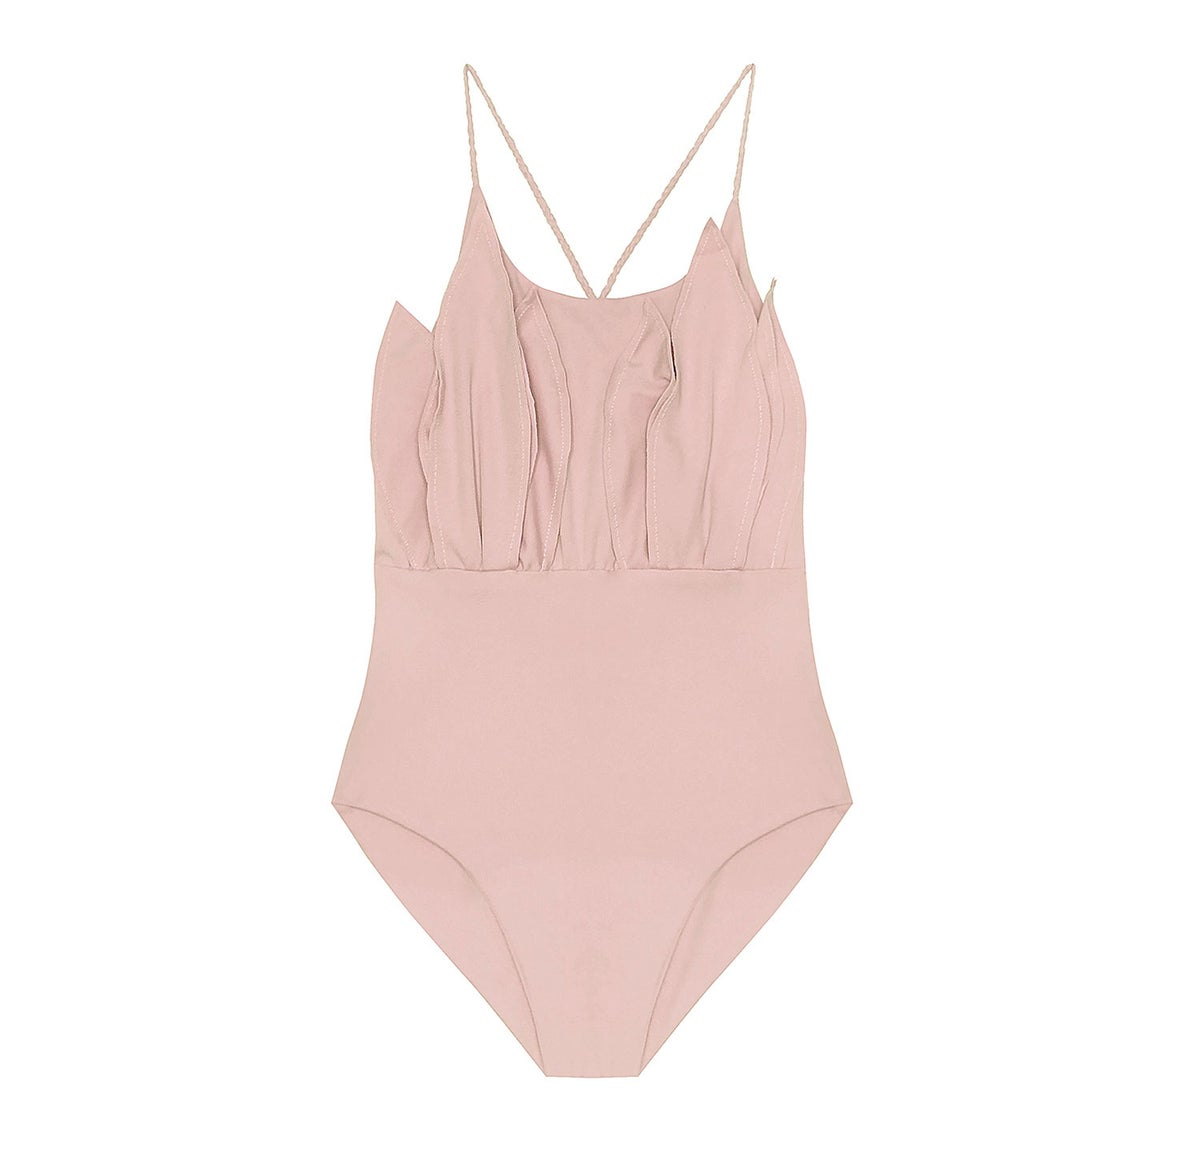 Image of MINI LILLY SWIMSUIT